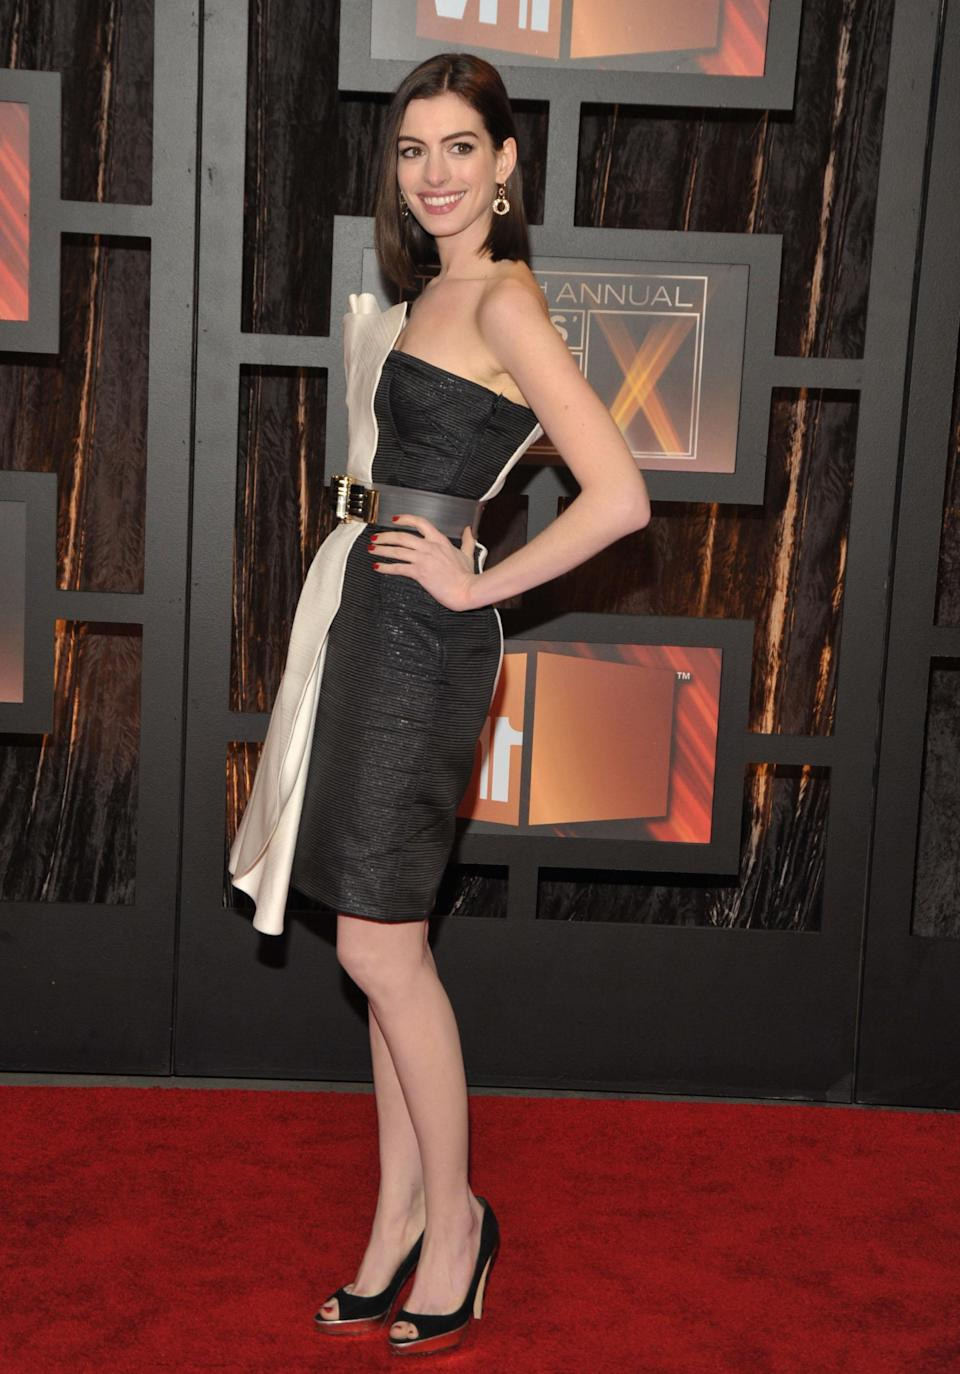 Anne Hathaway during awards season in 2009. (Photo: Getty Images)